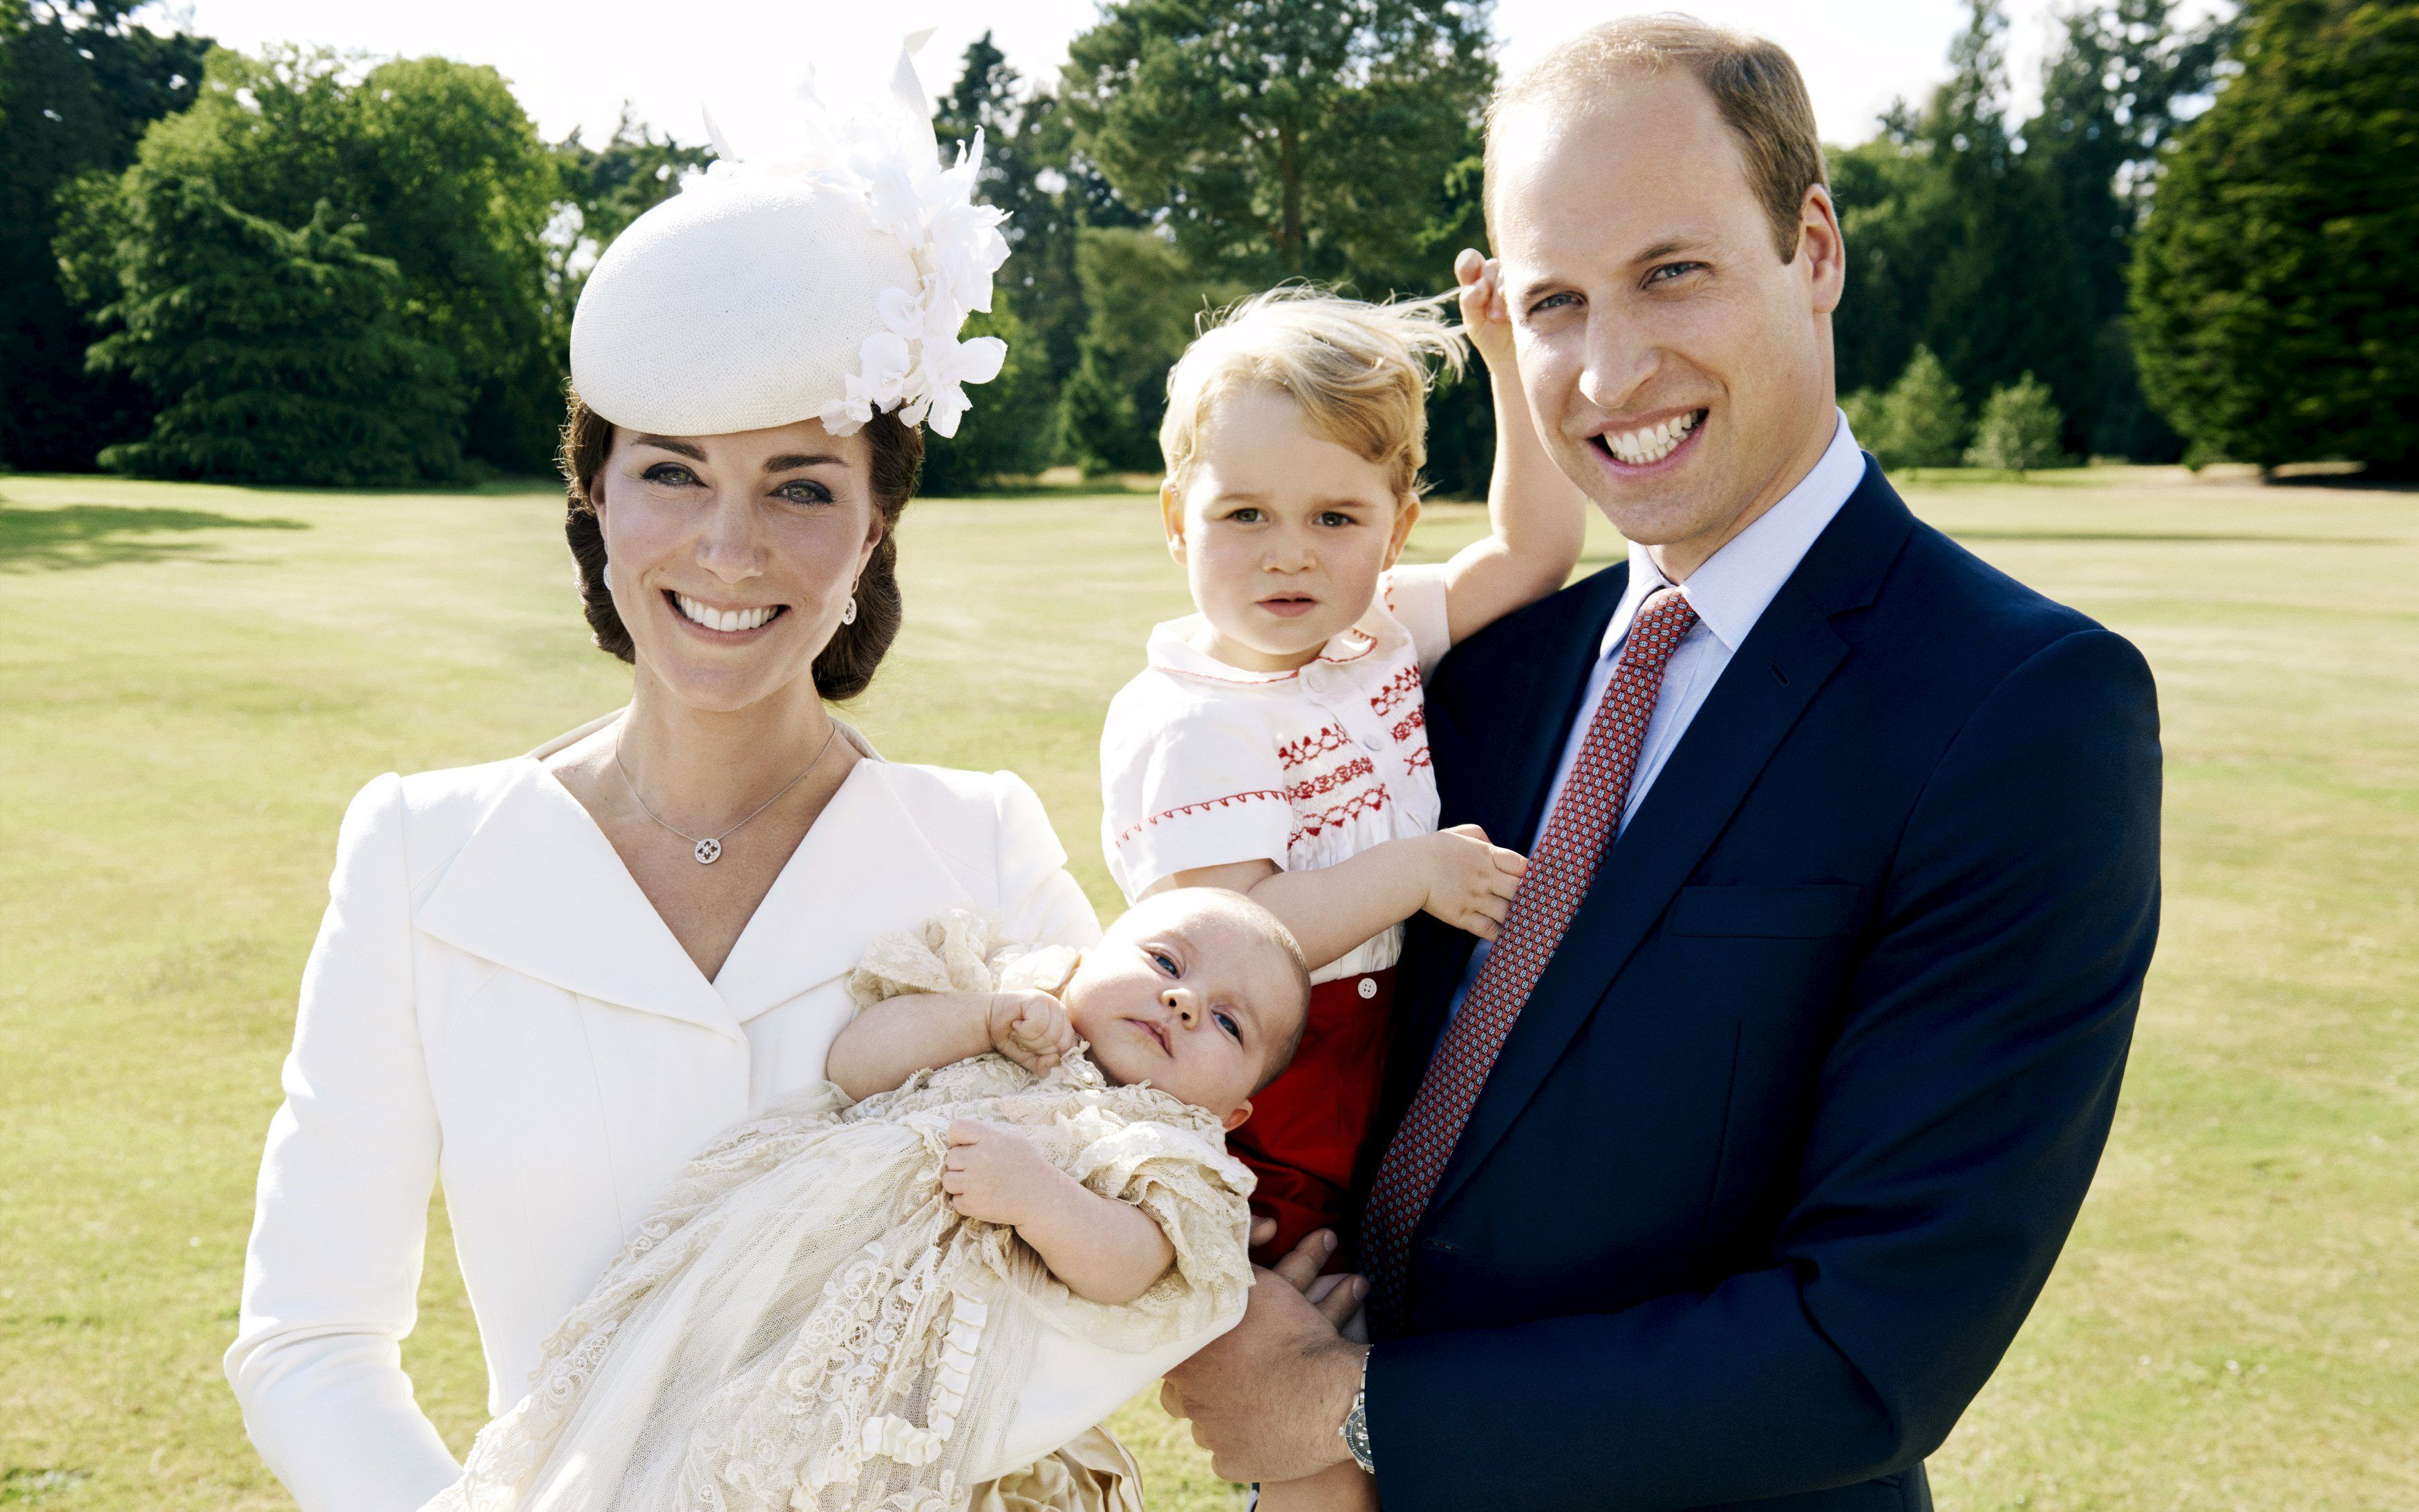 George and Charlotte to join Duke and Duchess of Cambridge on Canada trip